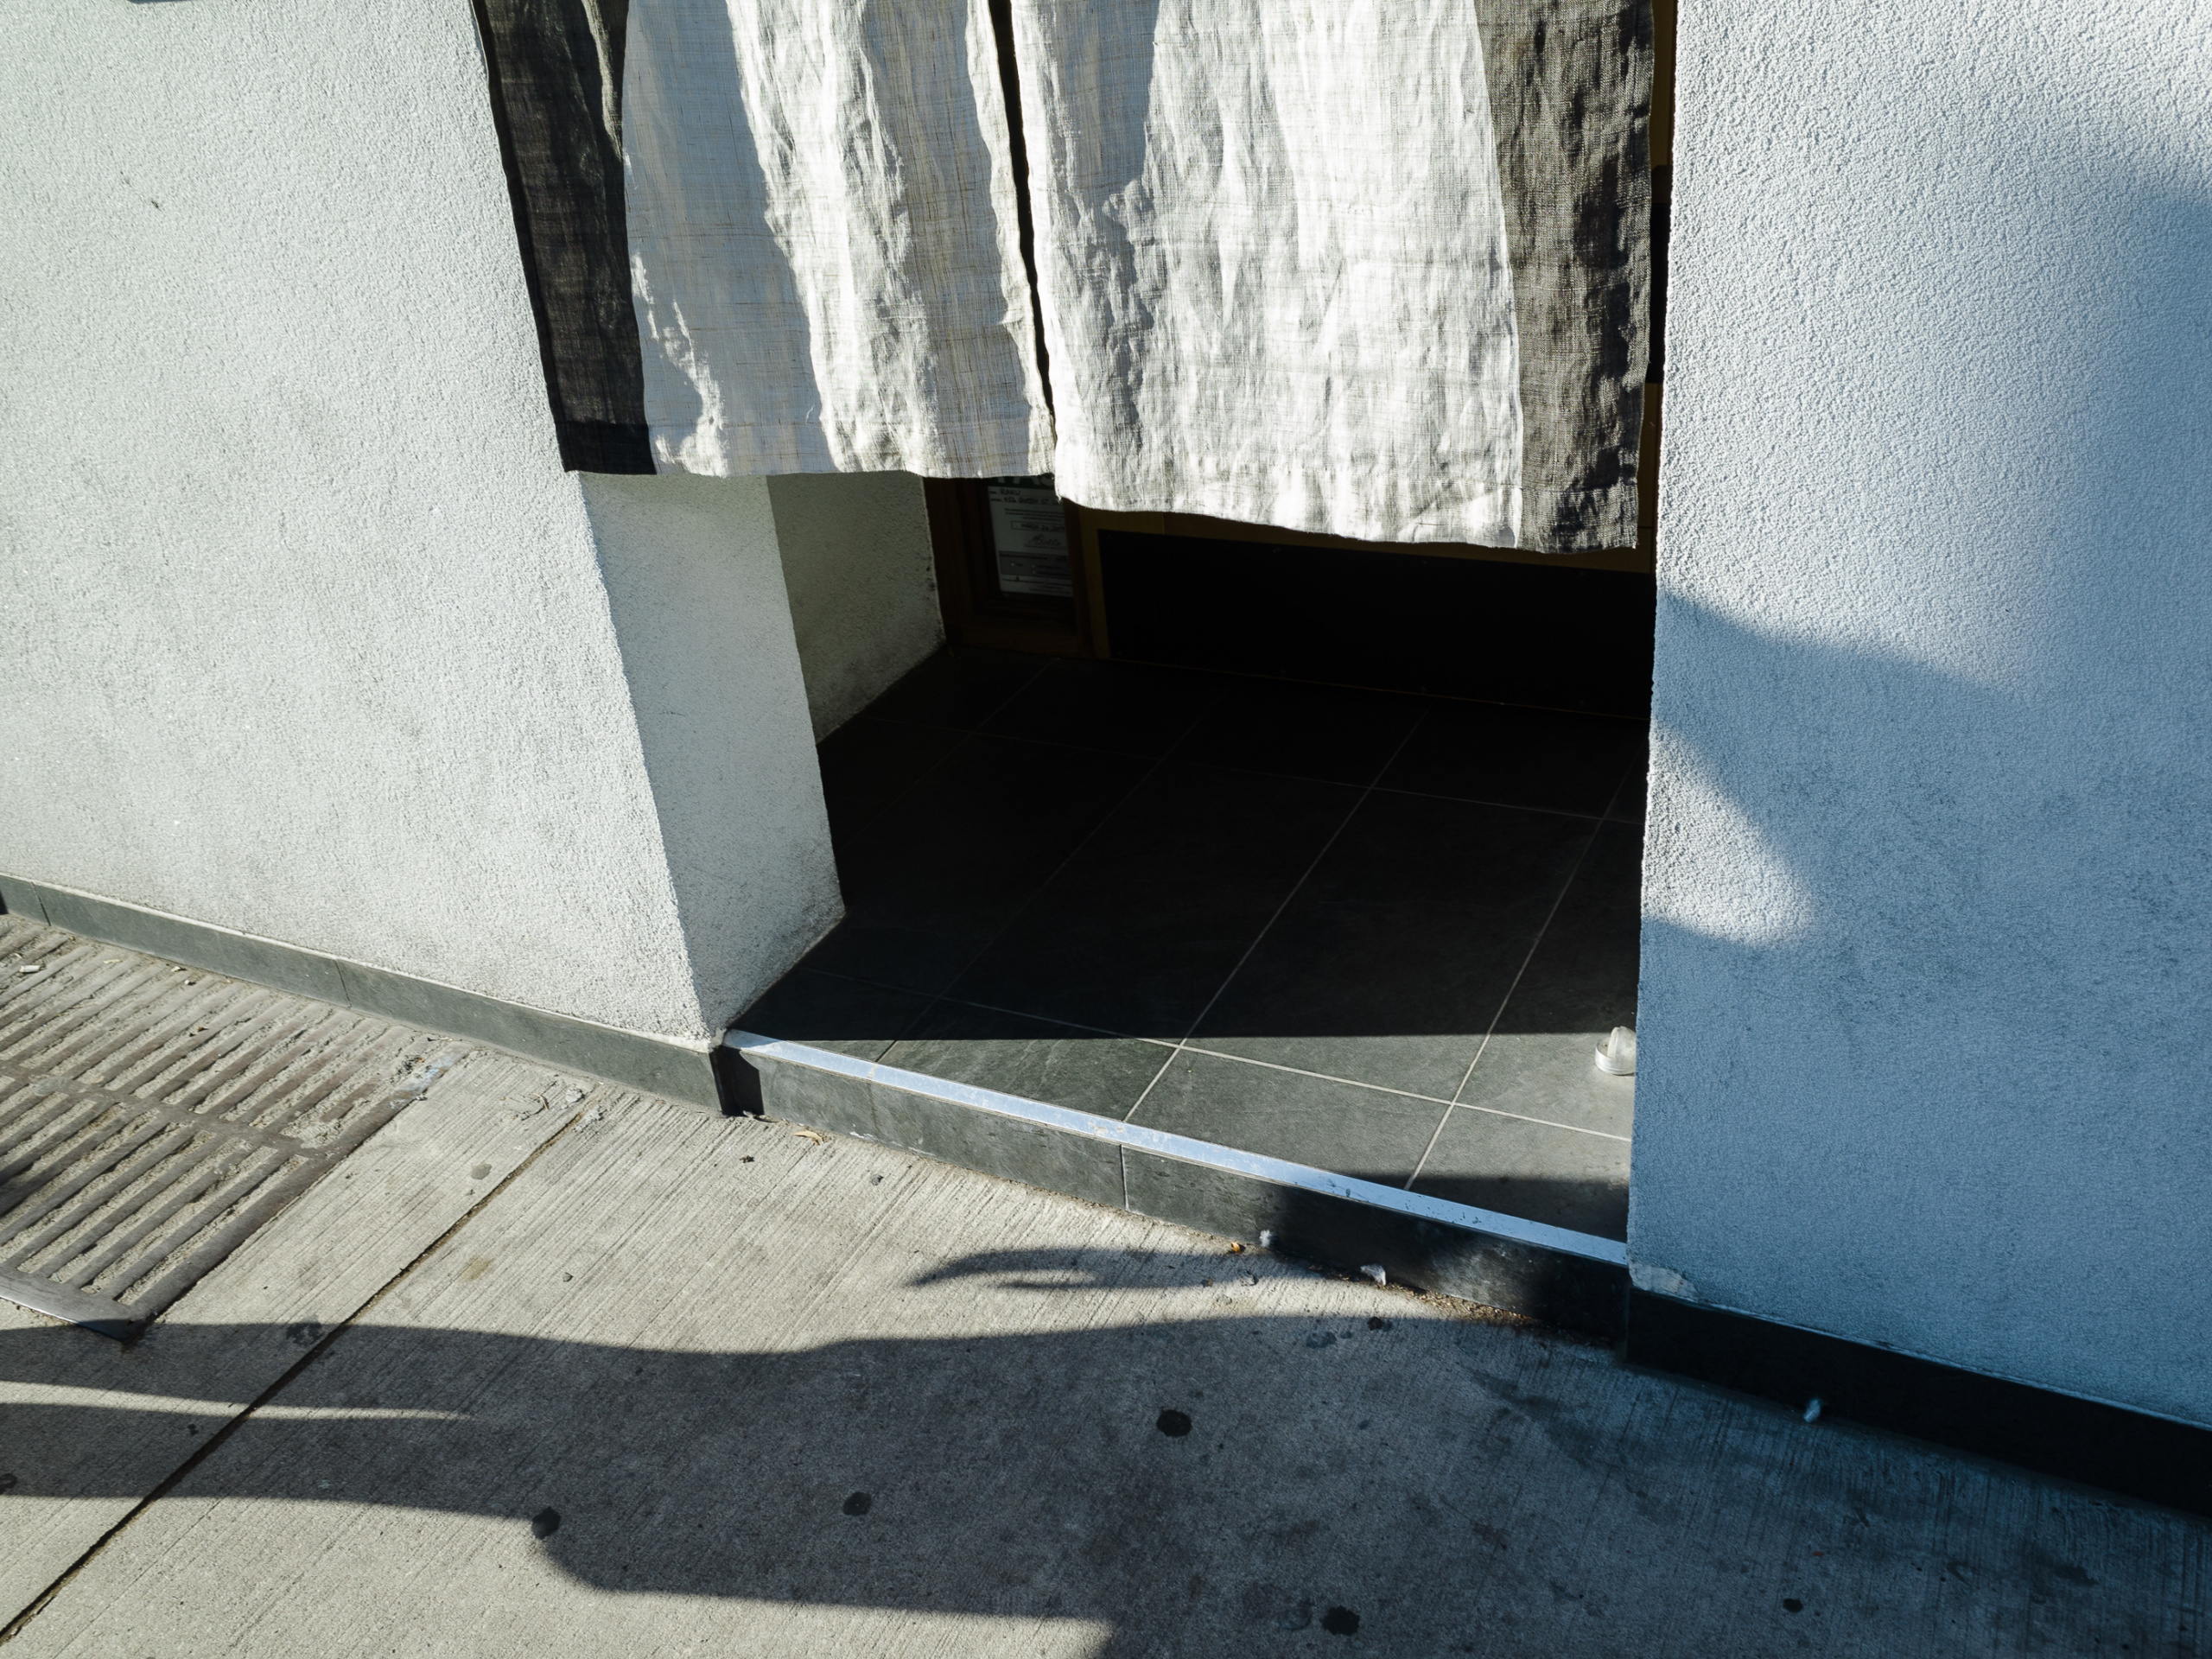 Atanas Bozdarov and Craig Rodmore, Every Step on Queen Street West (grey tiles, curtain), 2020